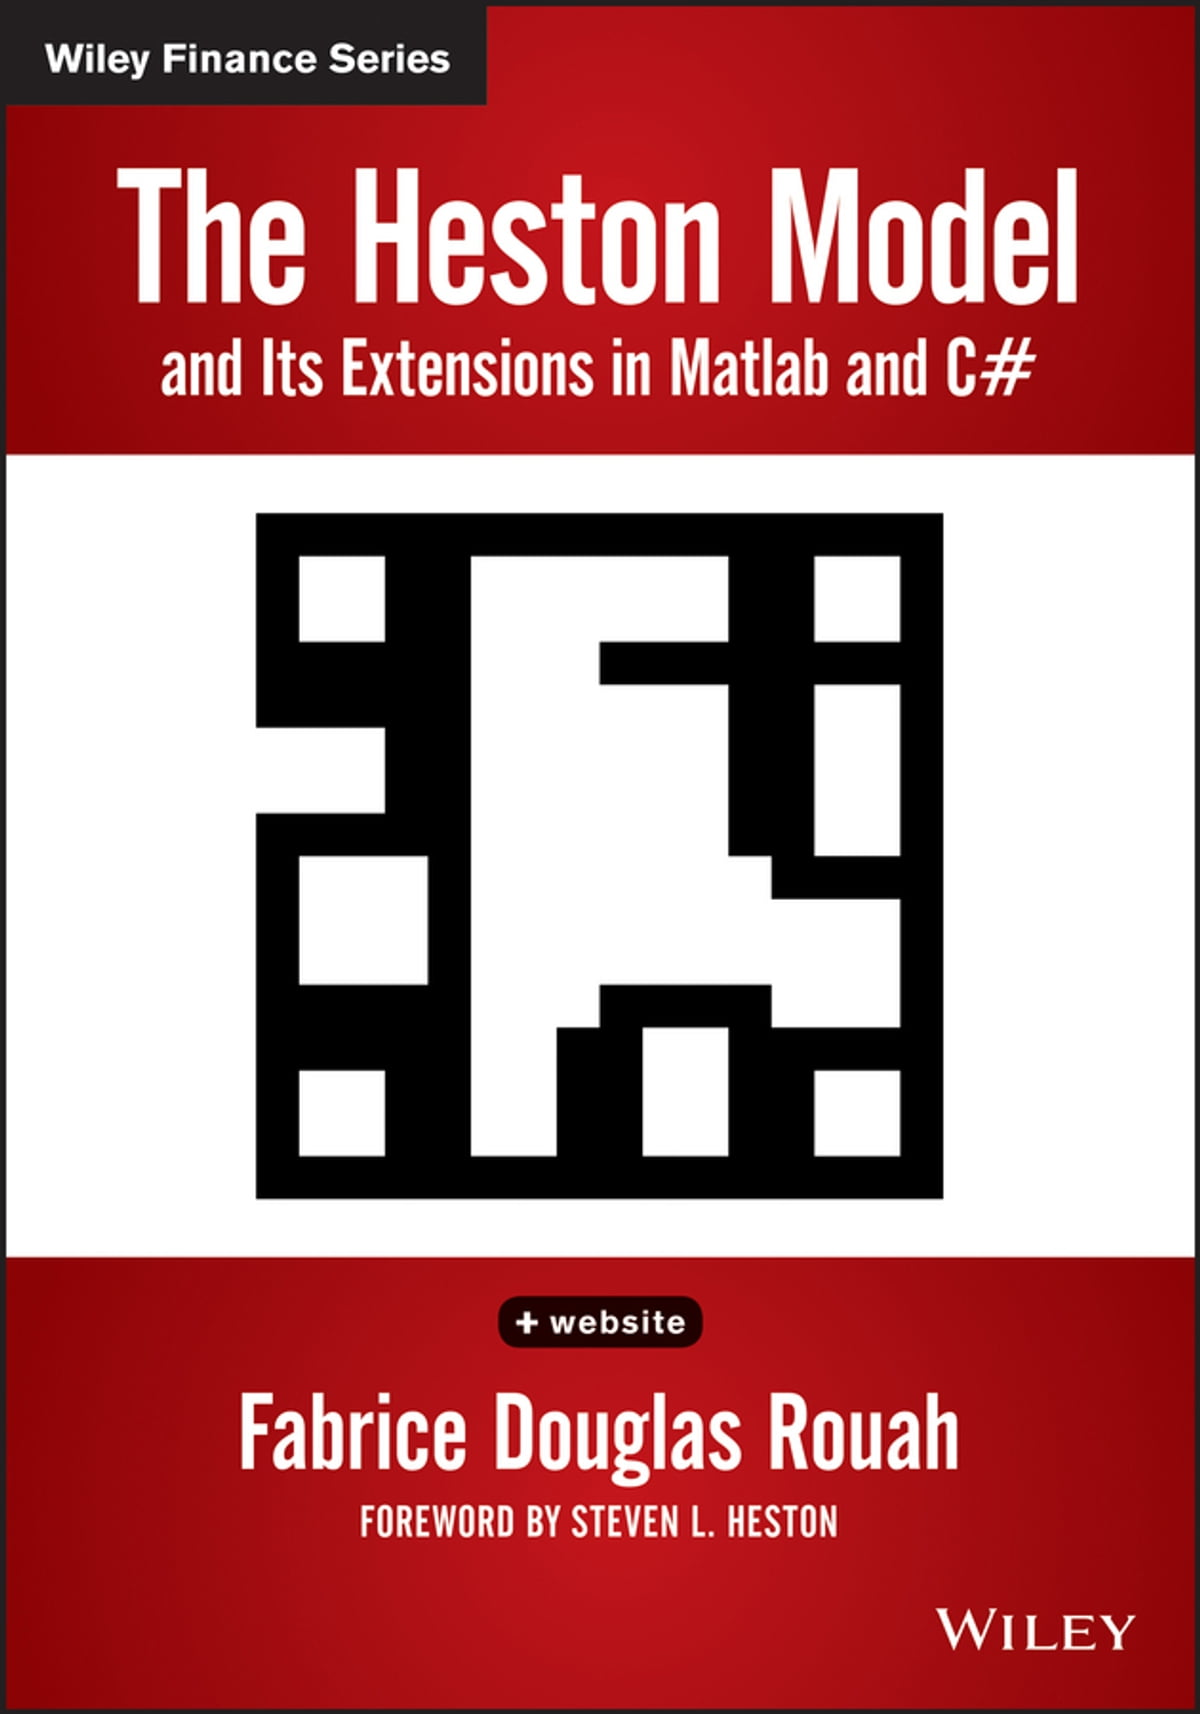 The heston model and its extensions in matlab and c ebook by fabrice d rouah 9781118695173 rakuten kobo